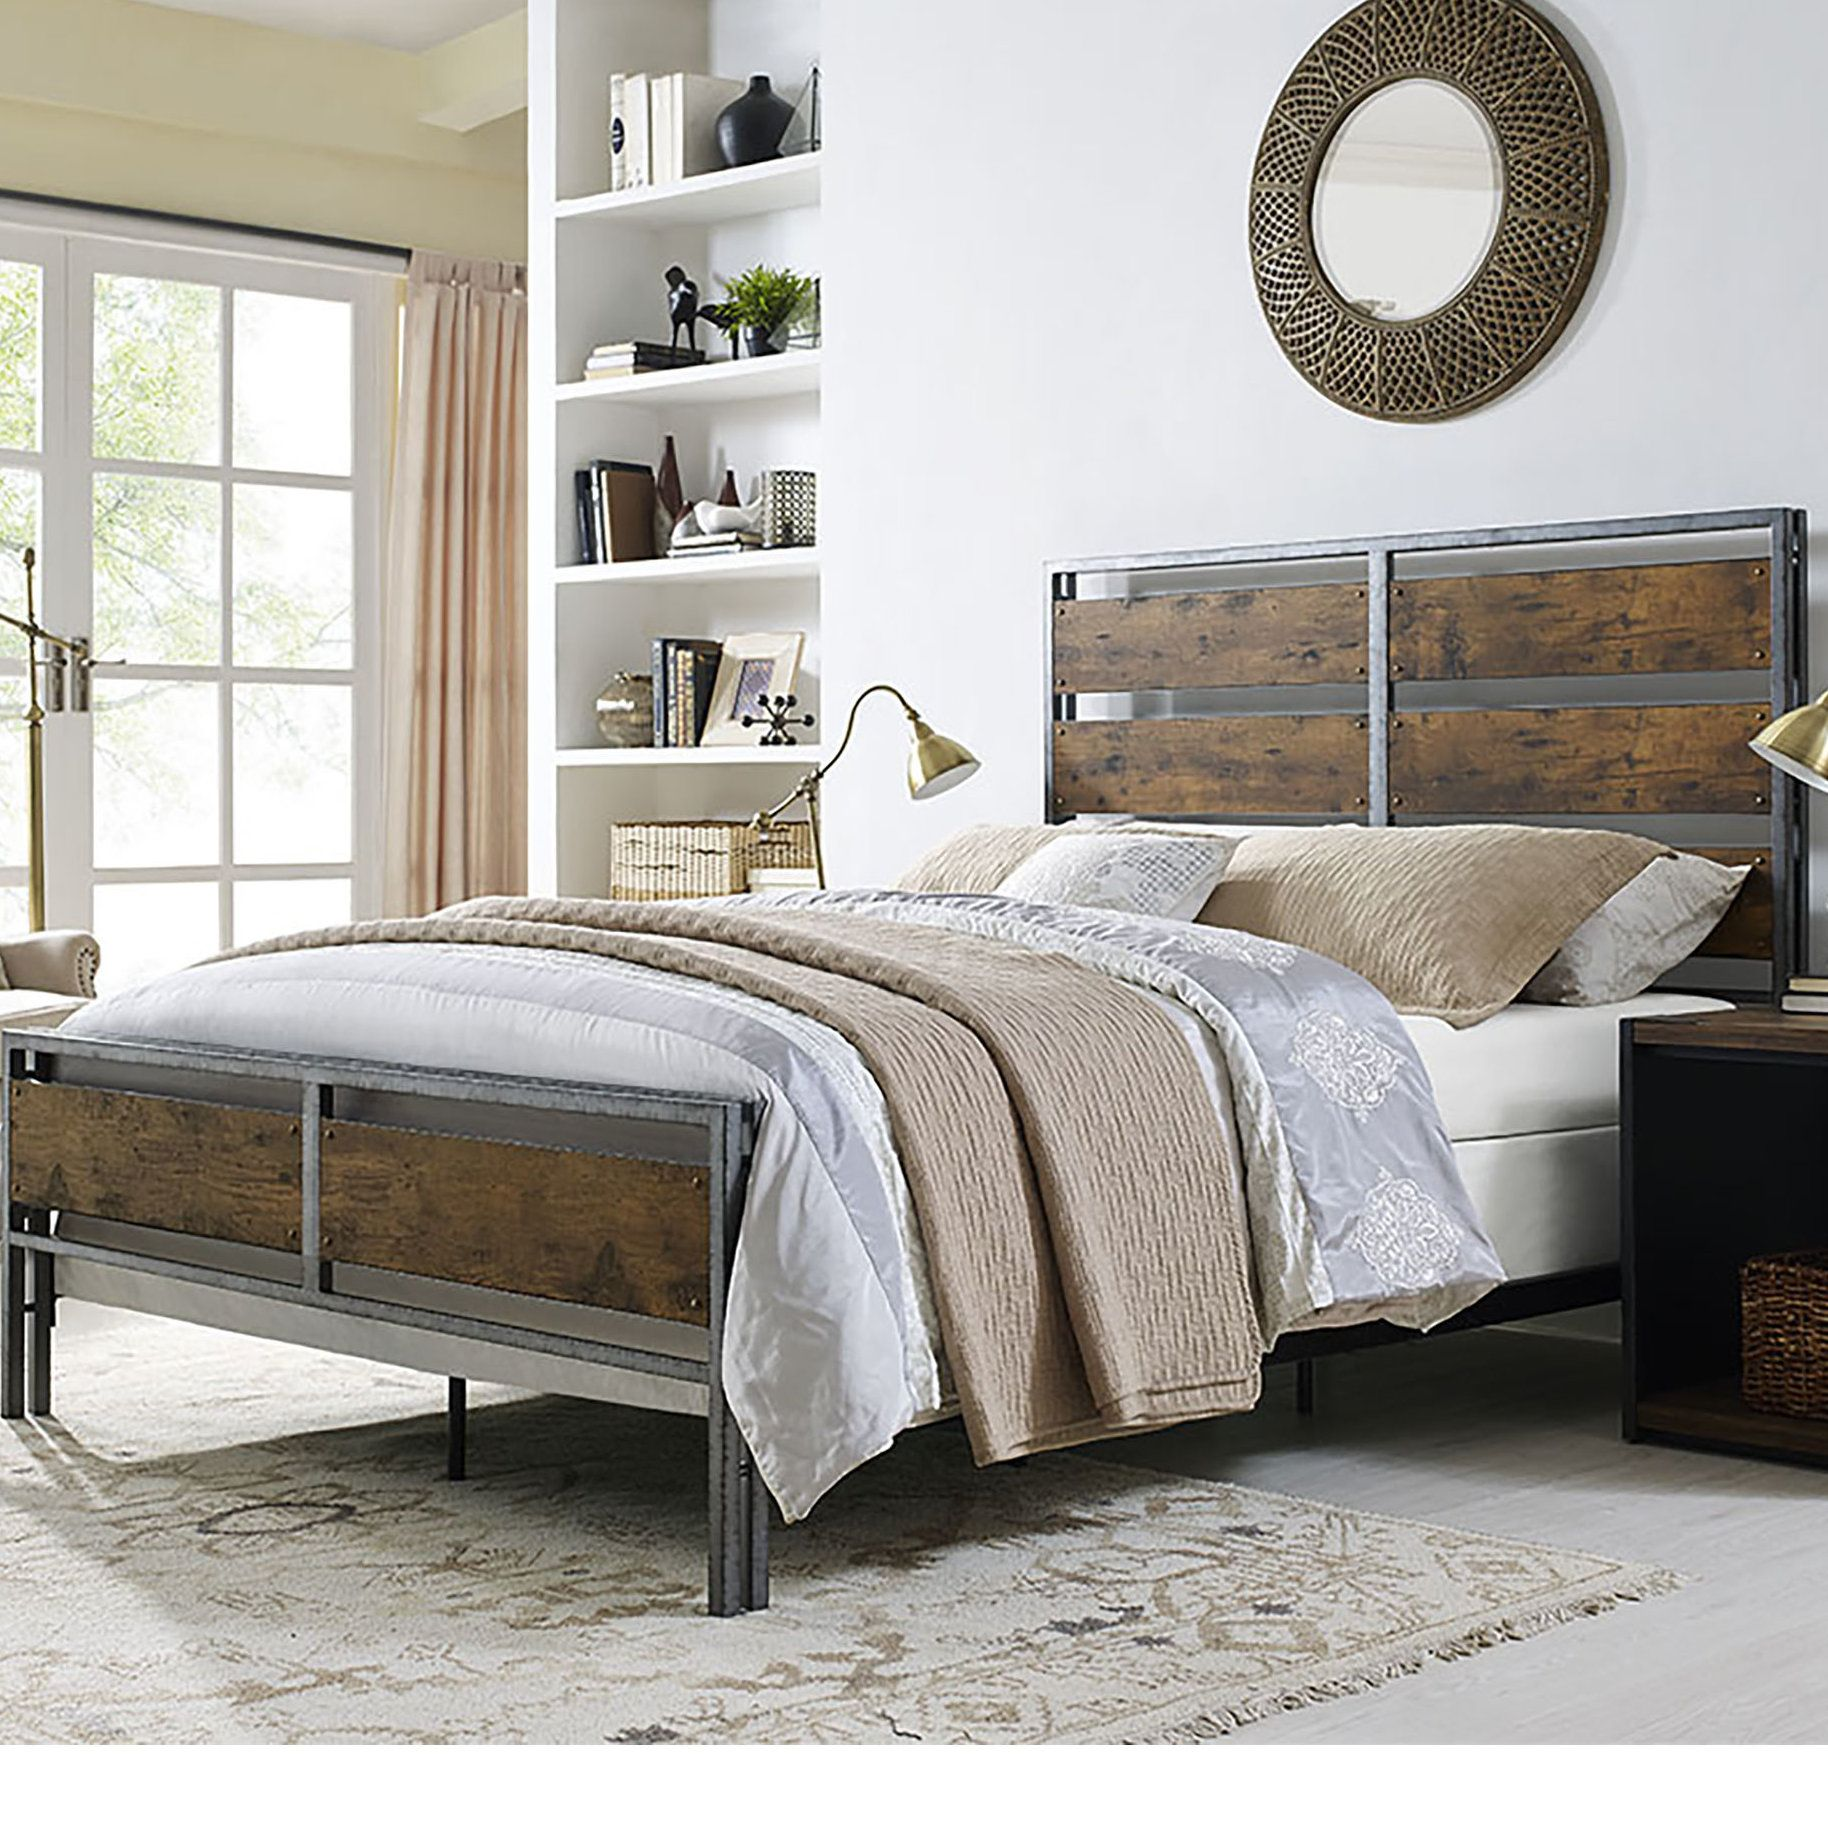 Wilhelmine metal and wood plank queen bed products pinterest